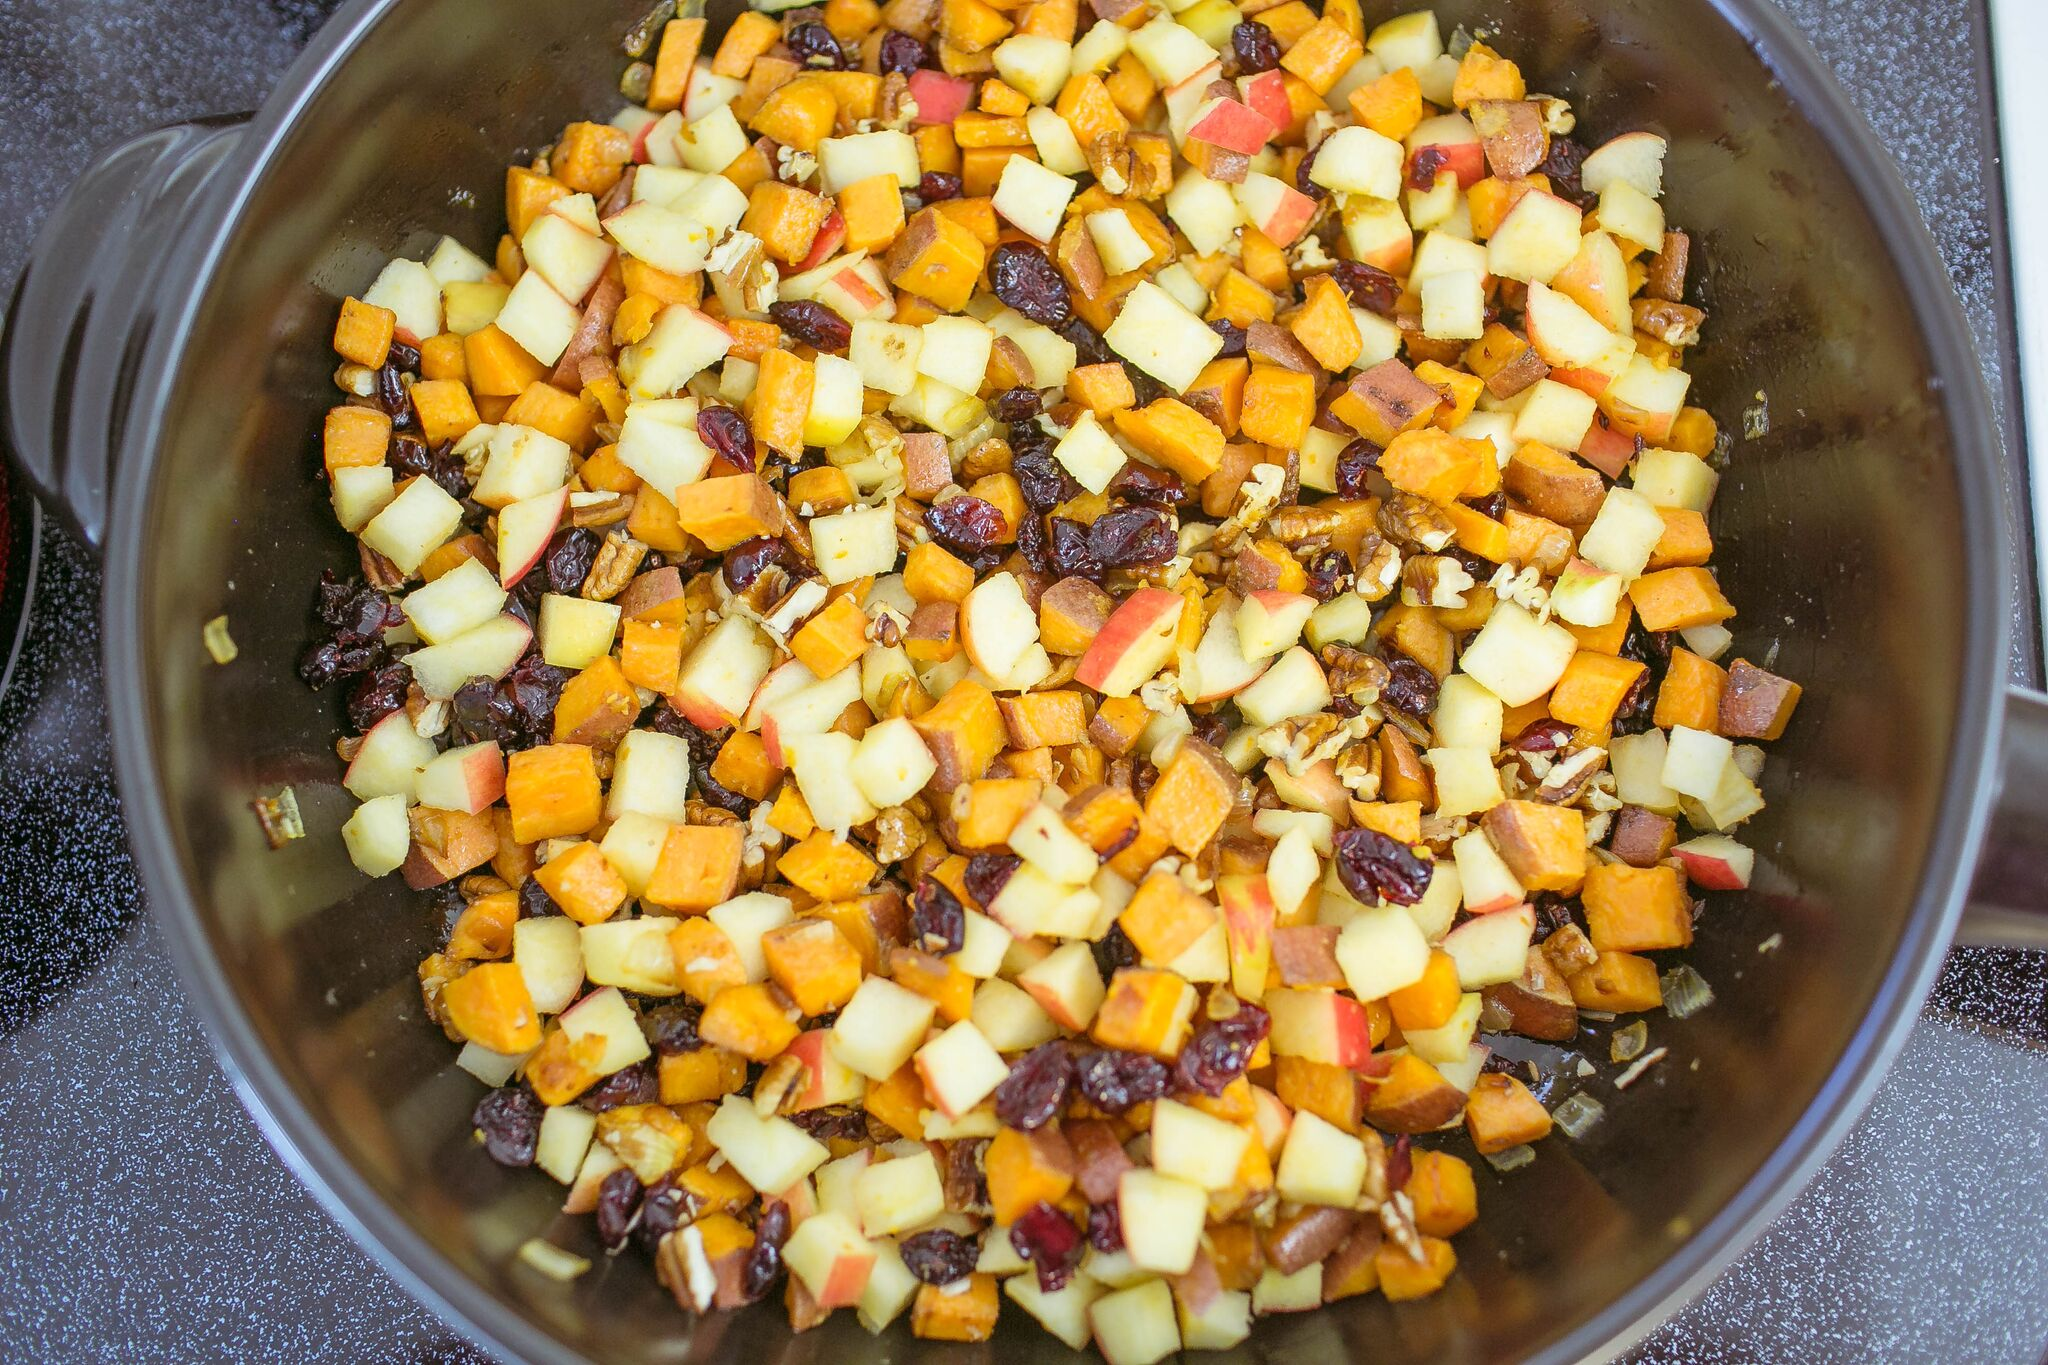 Add butter, the diced apple, chopped pecans and cranberries to pan then stir until well combined.